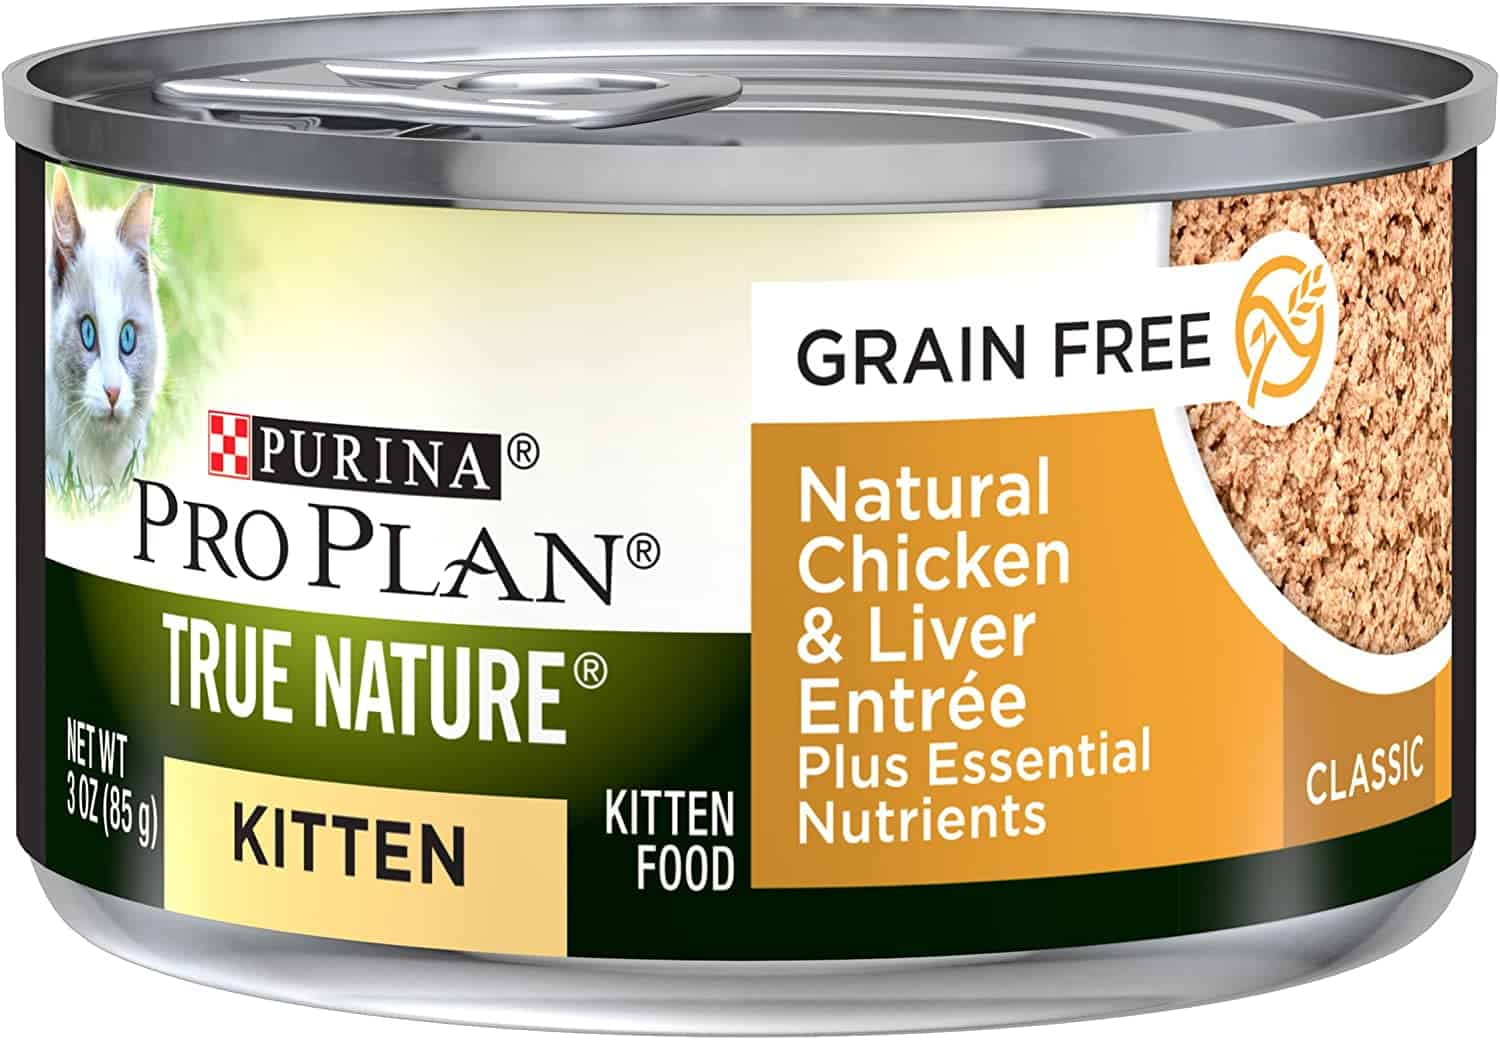 2020 Purina Pro Plan Cat Food Review: Advanced Nutrition for Cats 7